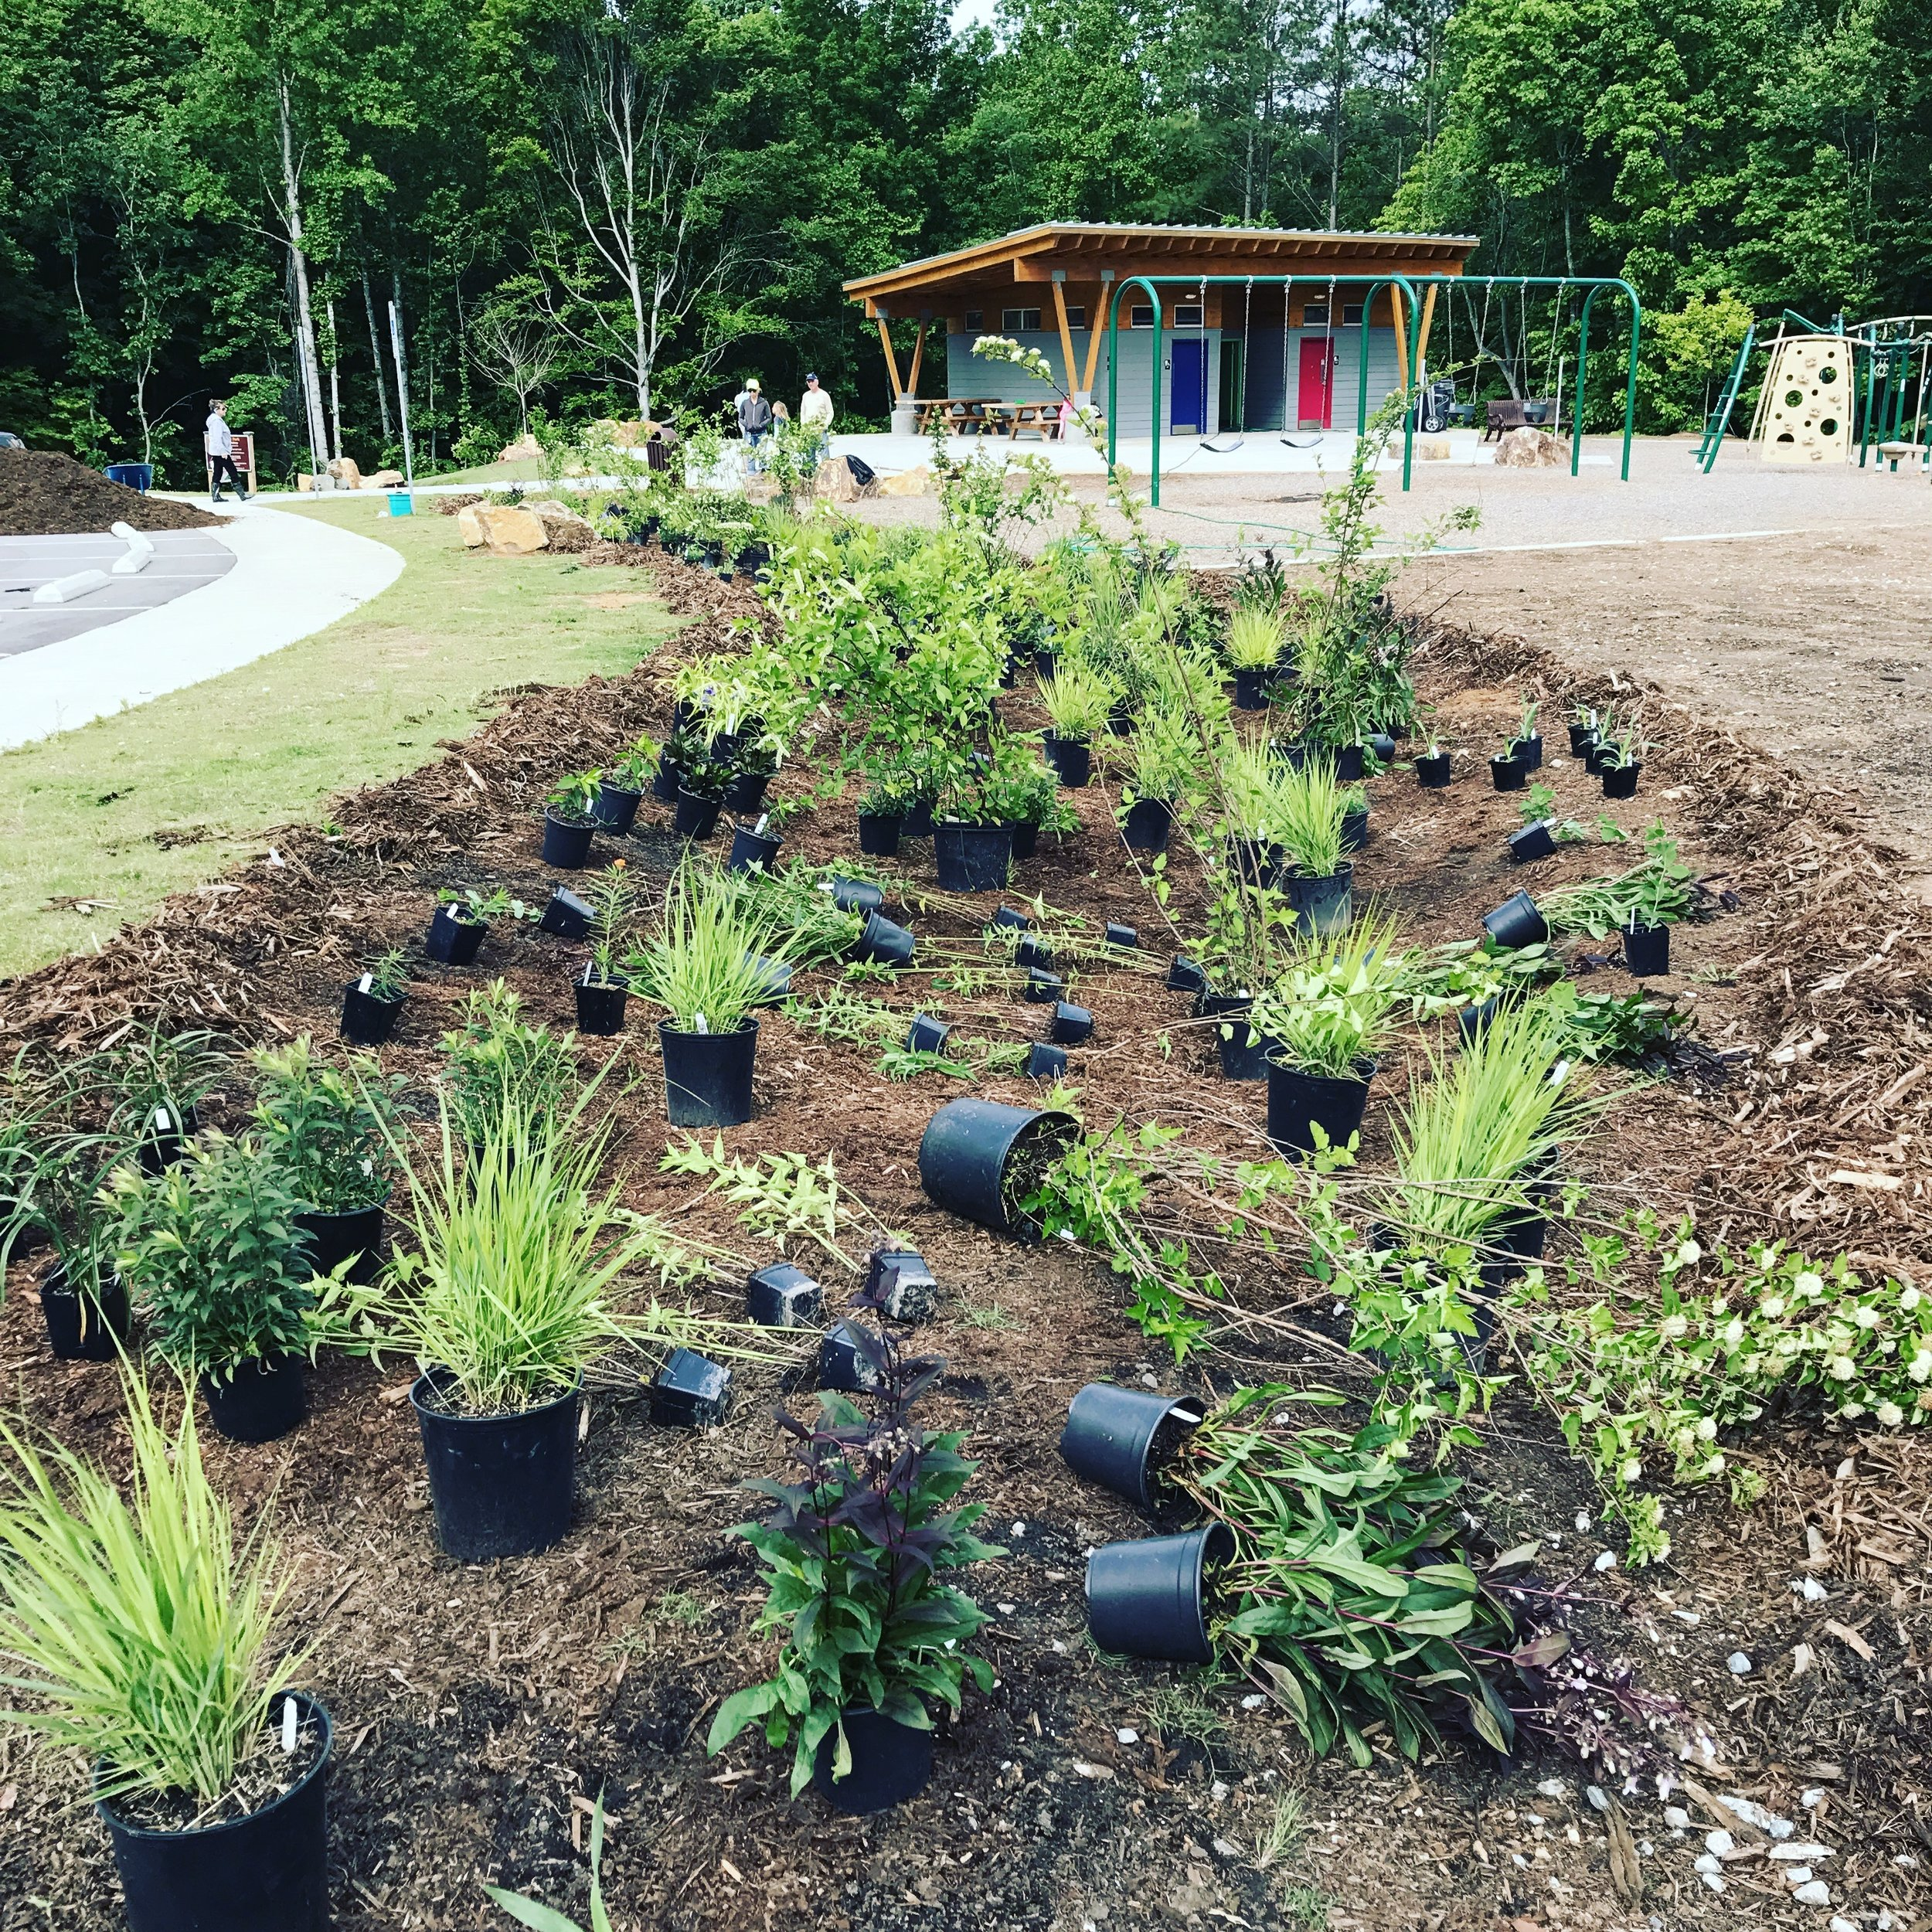 A former drainage channel filled with rip rap becomes a native pollinator garden designed to enhance the public's awareness of Hillsborough's Bee City USA initiative